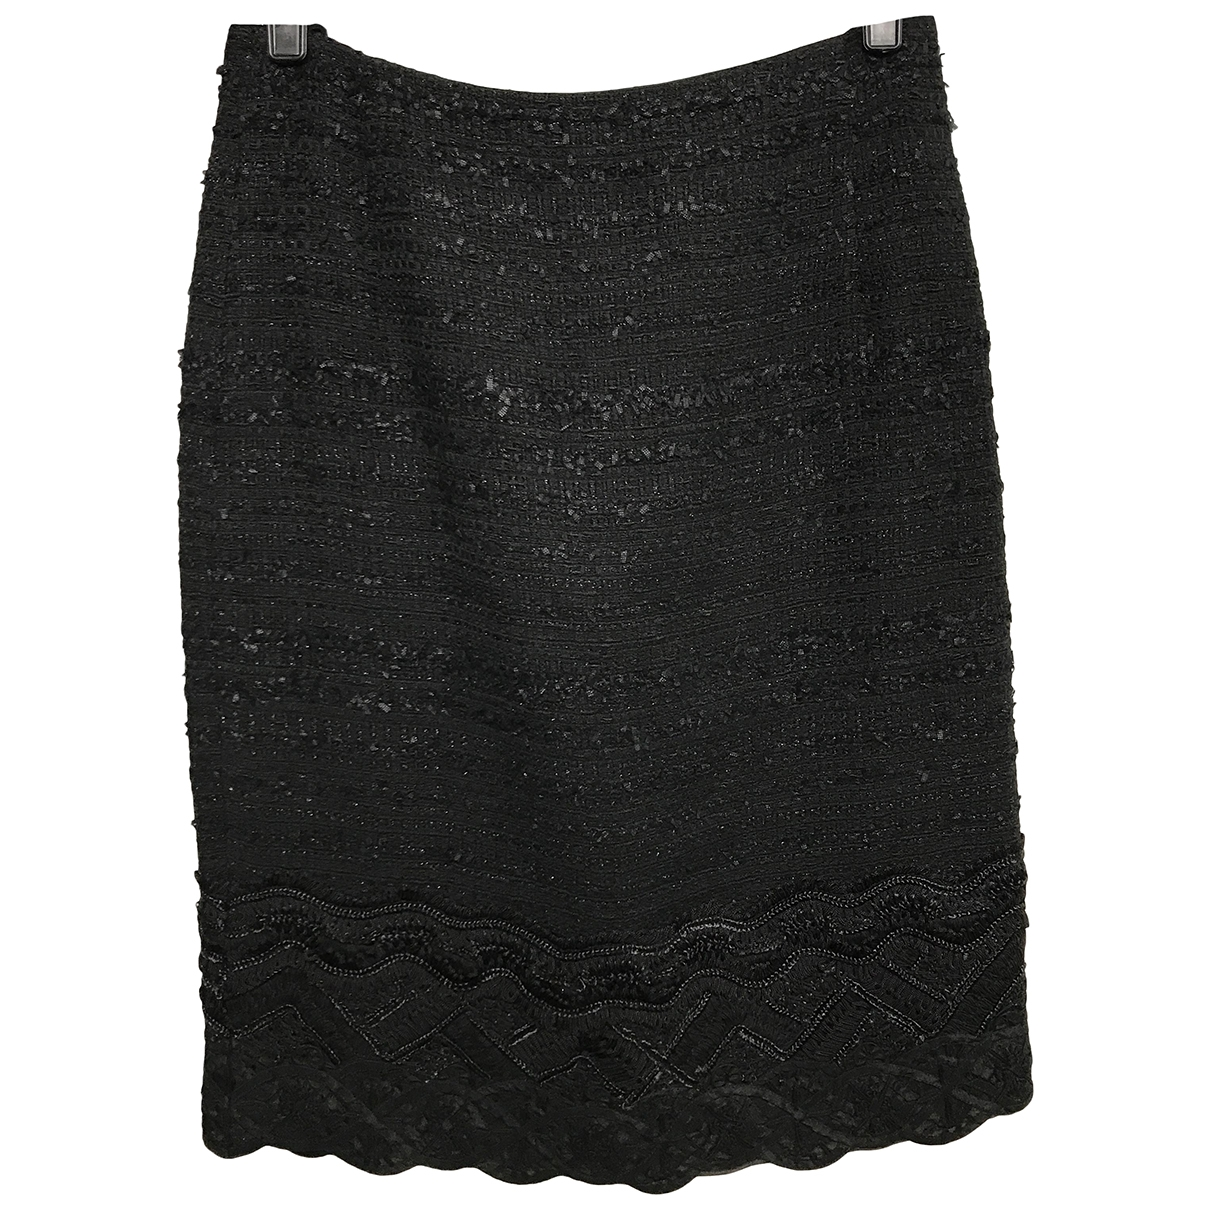 Oscar De La Renta \N Black Silk skirt for Women 4 UK